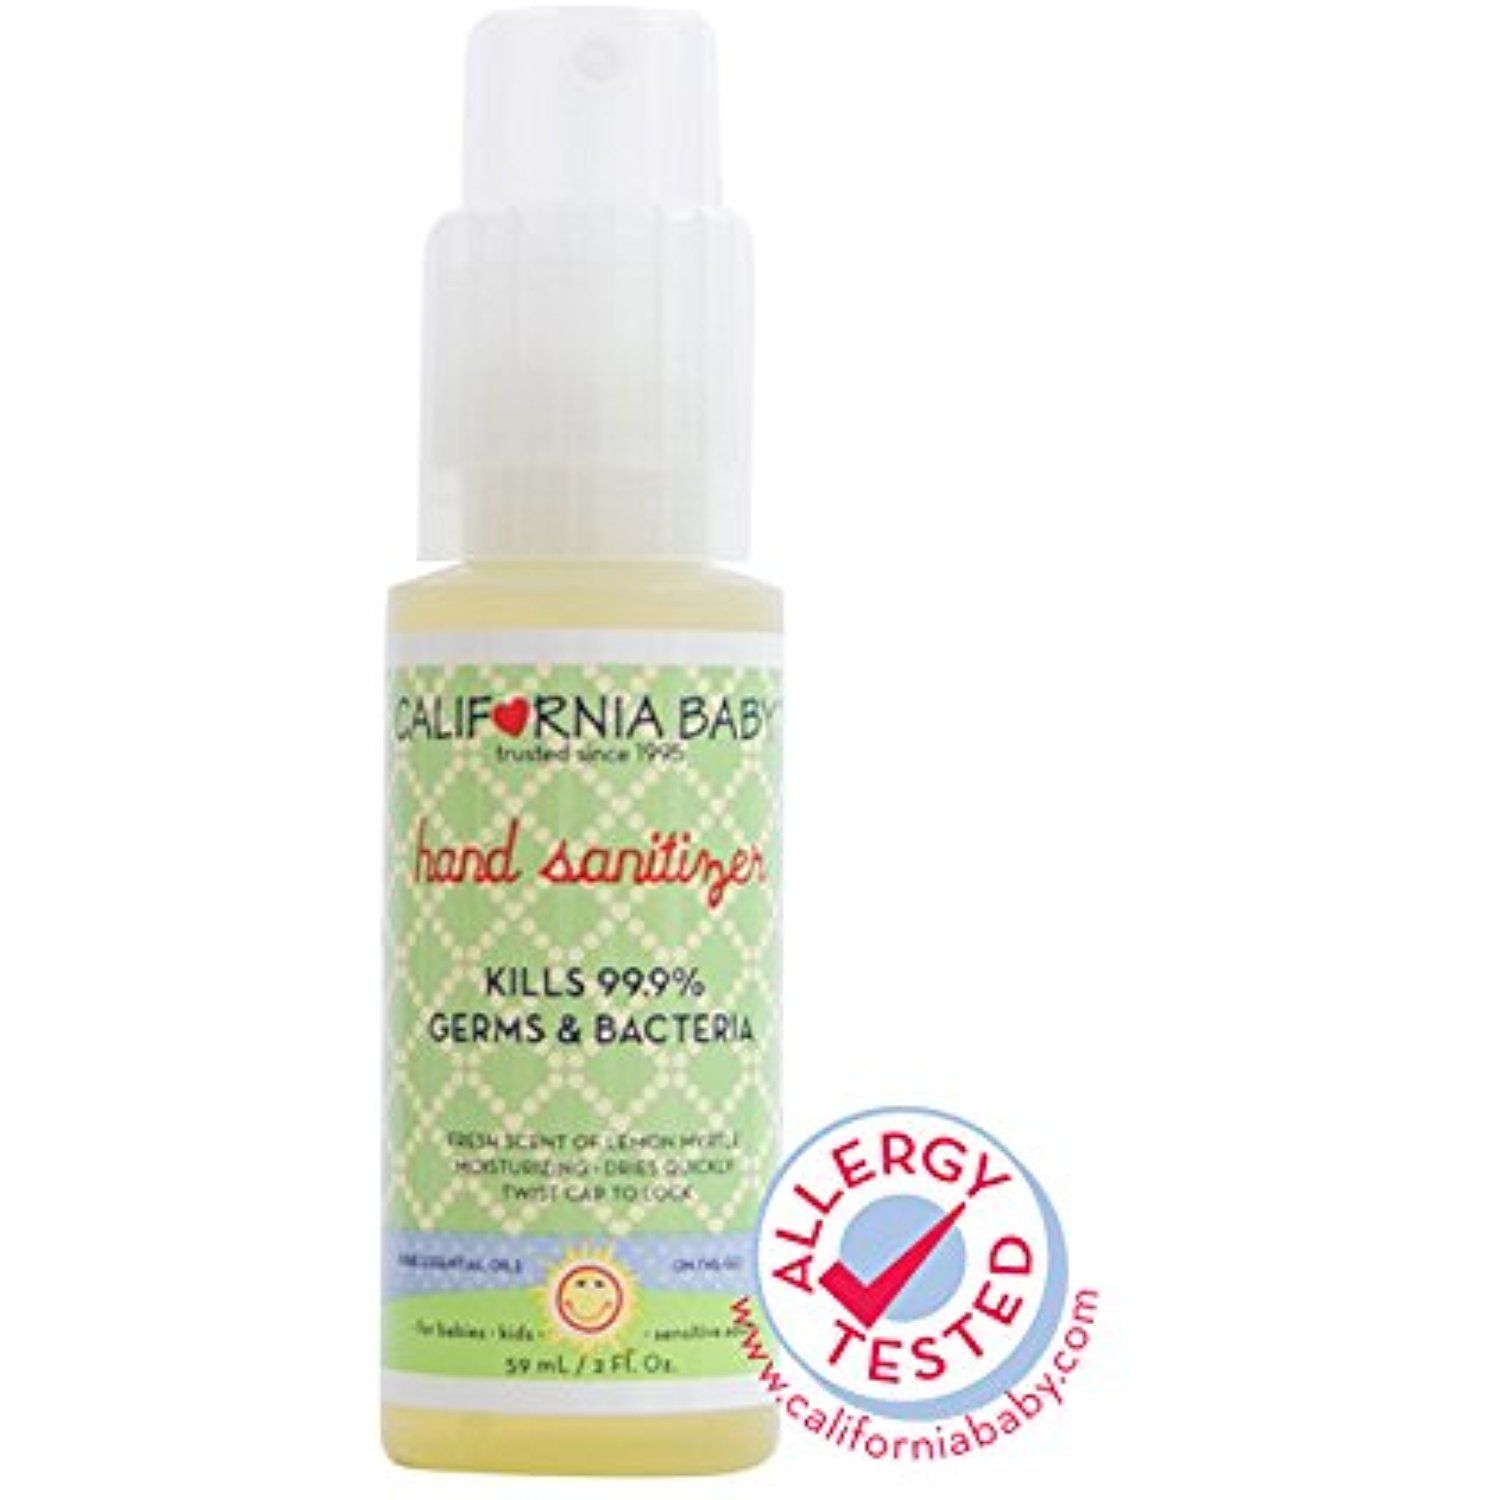 California Baby Hand Sanitizer Natural Lemon Myrtle 2 Oz Find